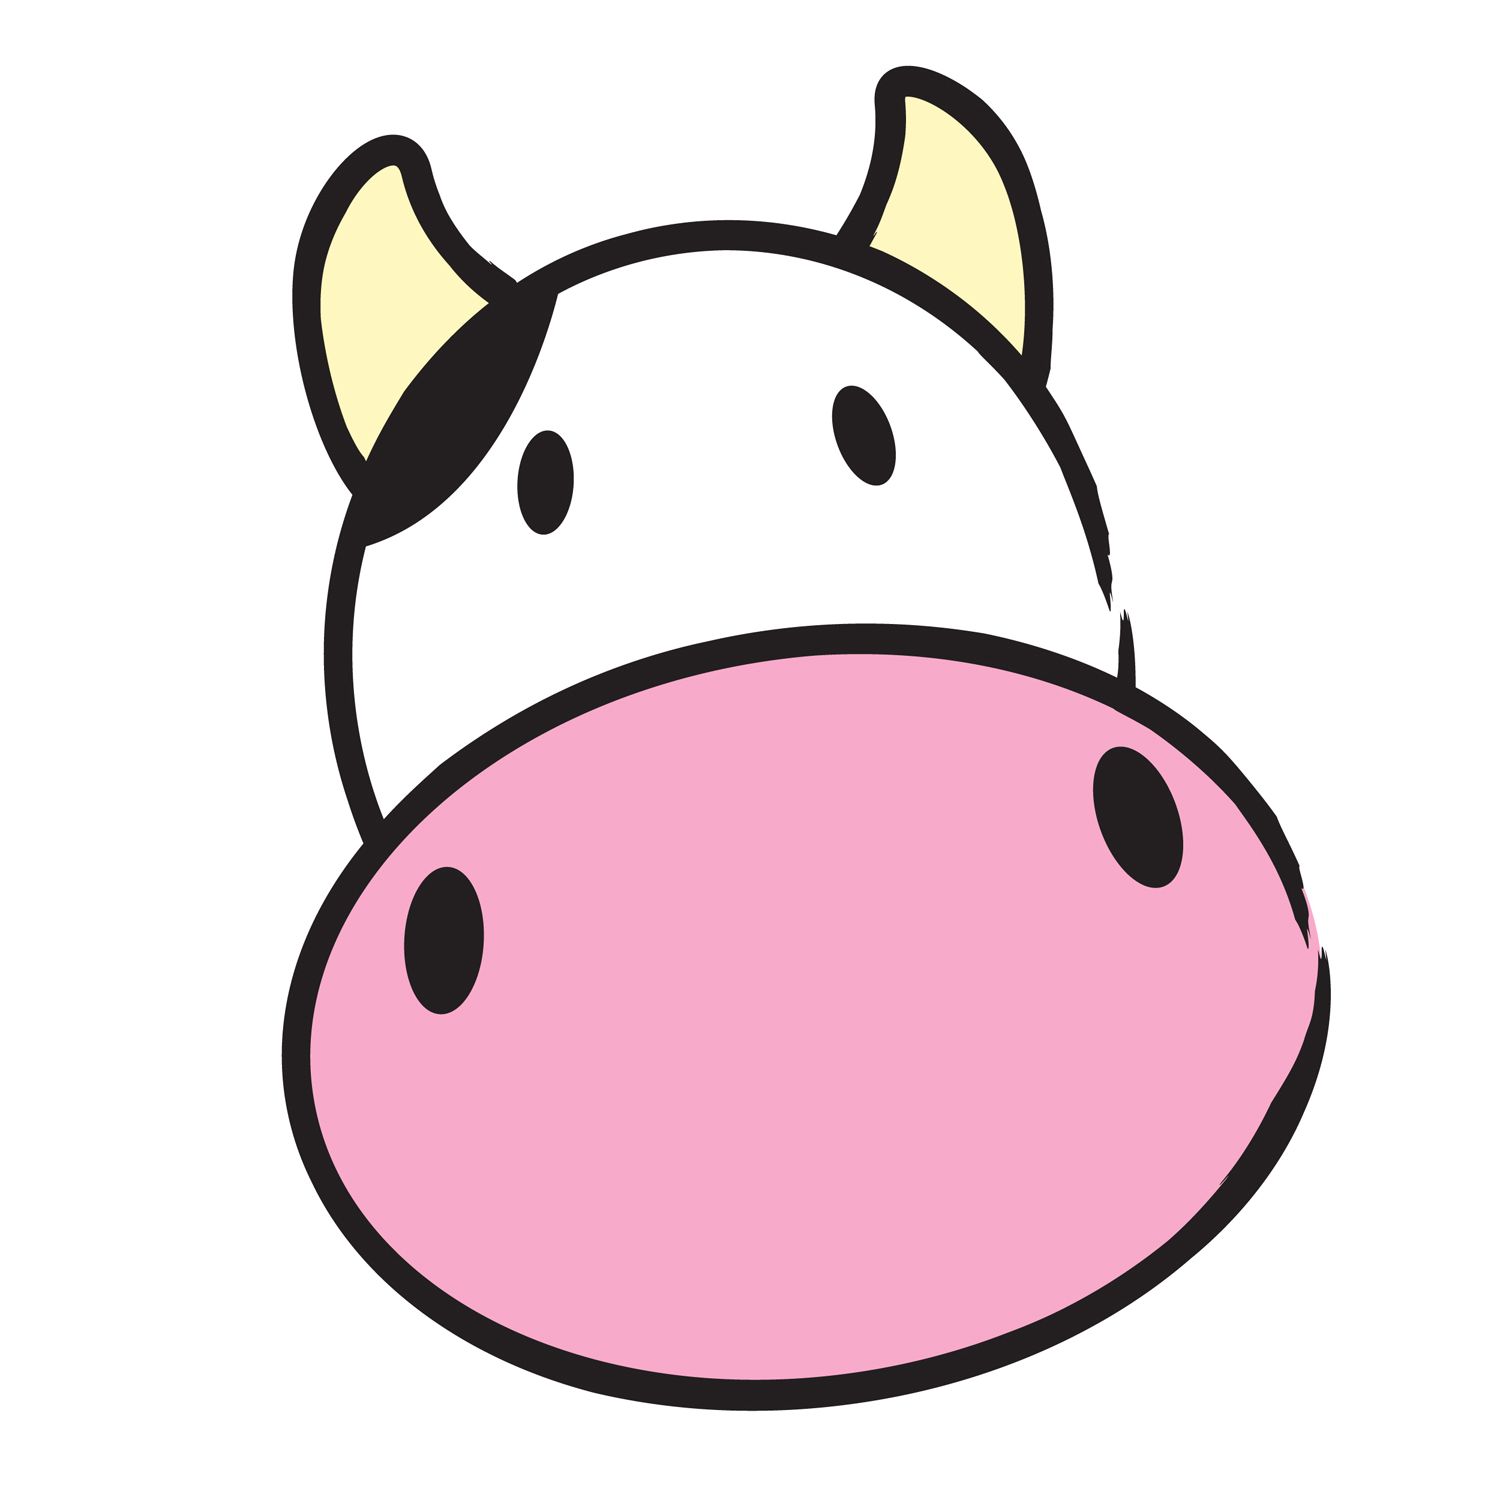 1500x1500 Image Result For Cow Clipart Rocks Cow, Rock